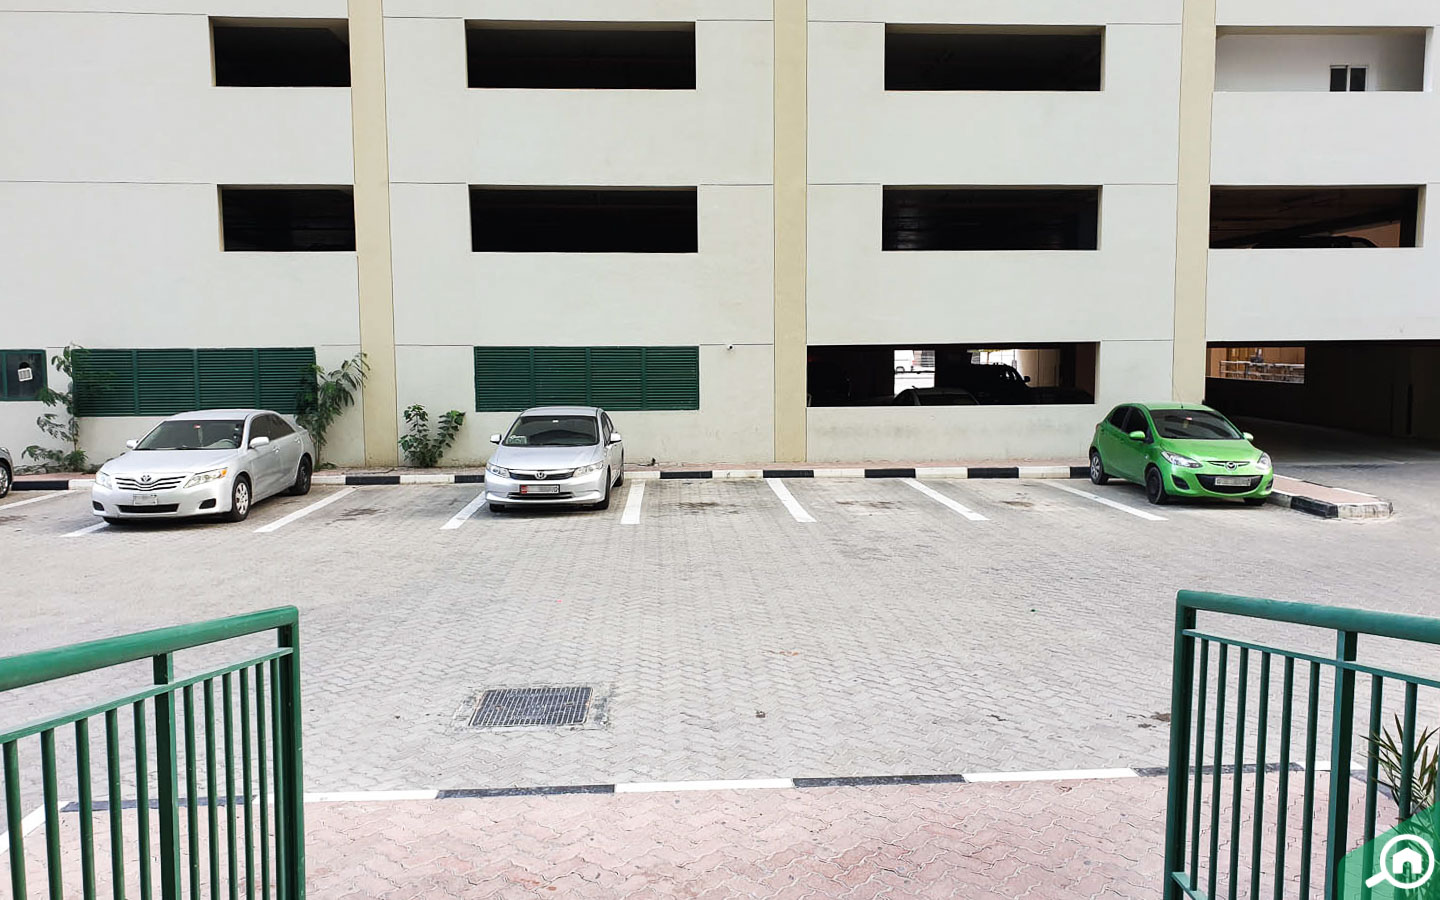 A parking plaza located behind Al Attar Tower